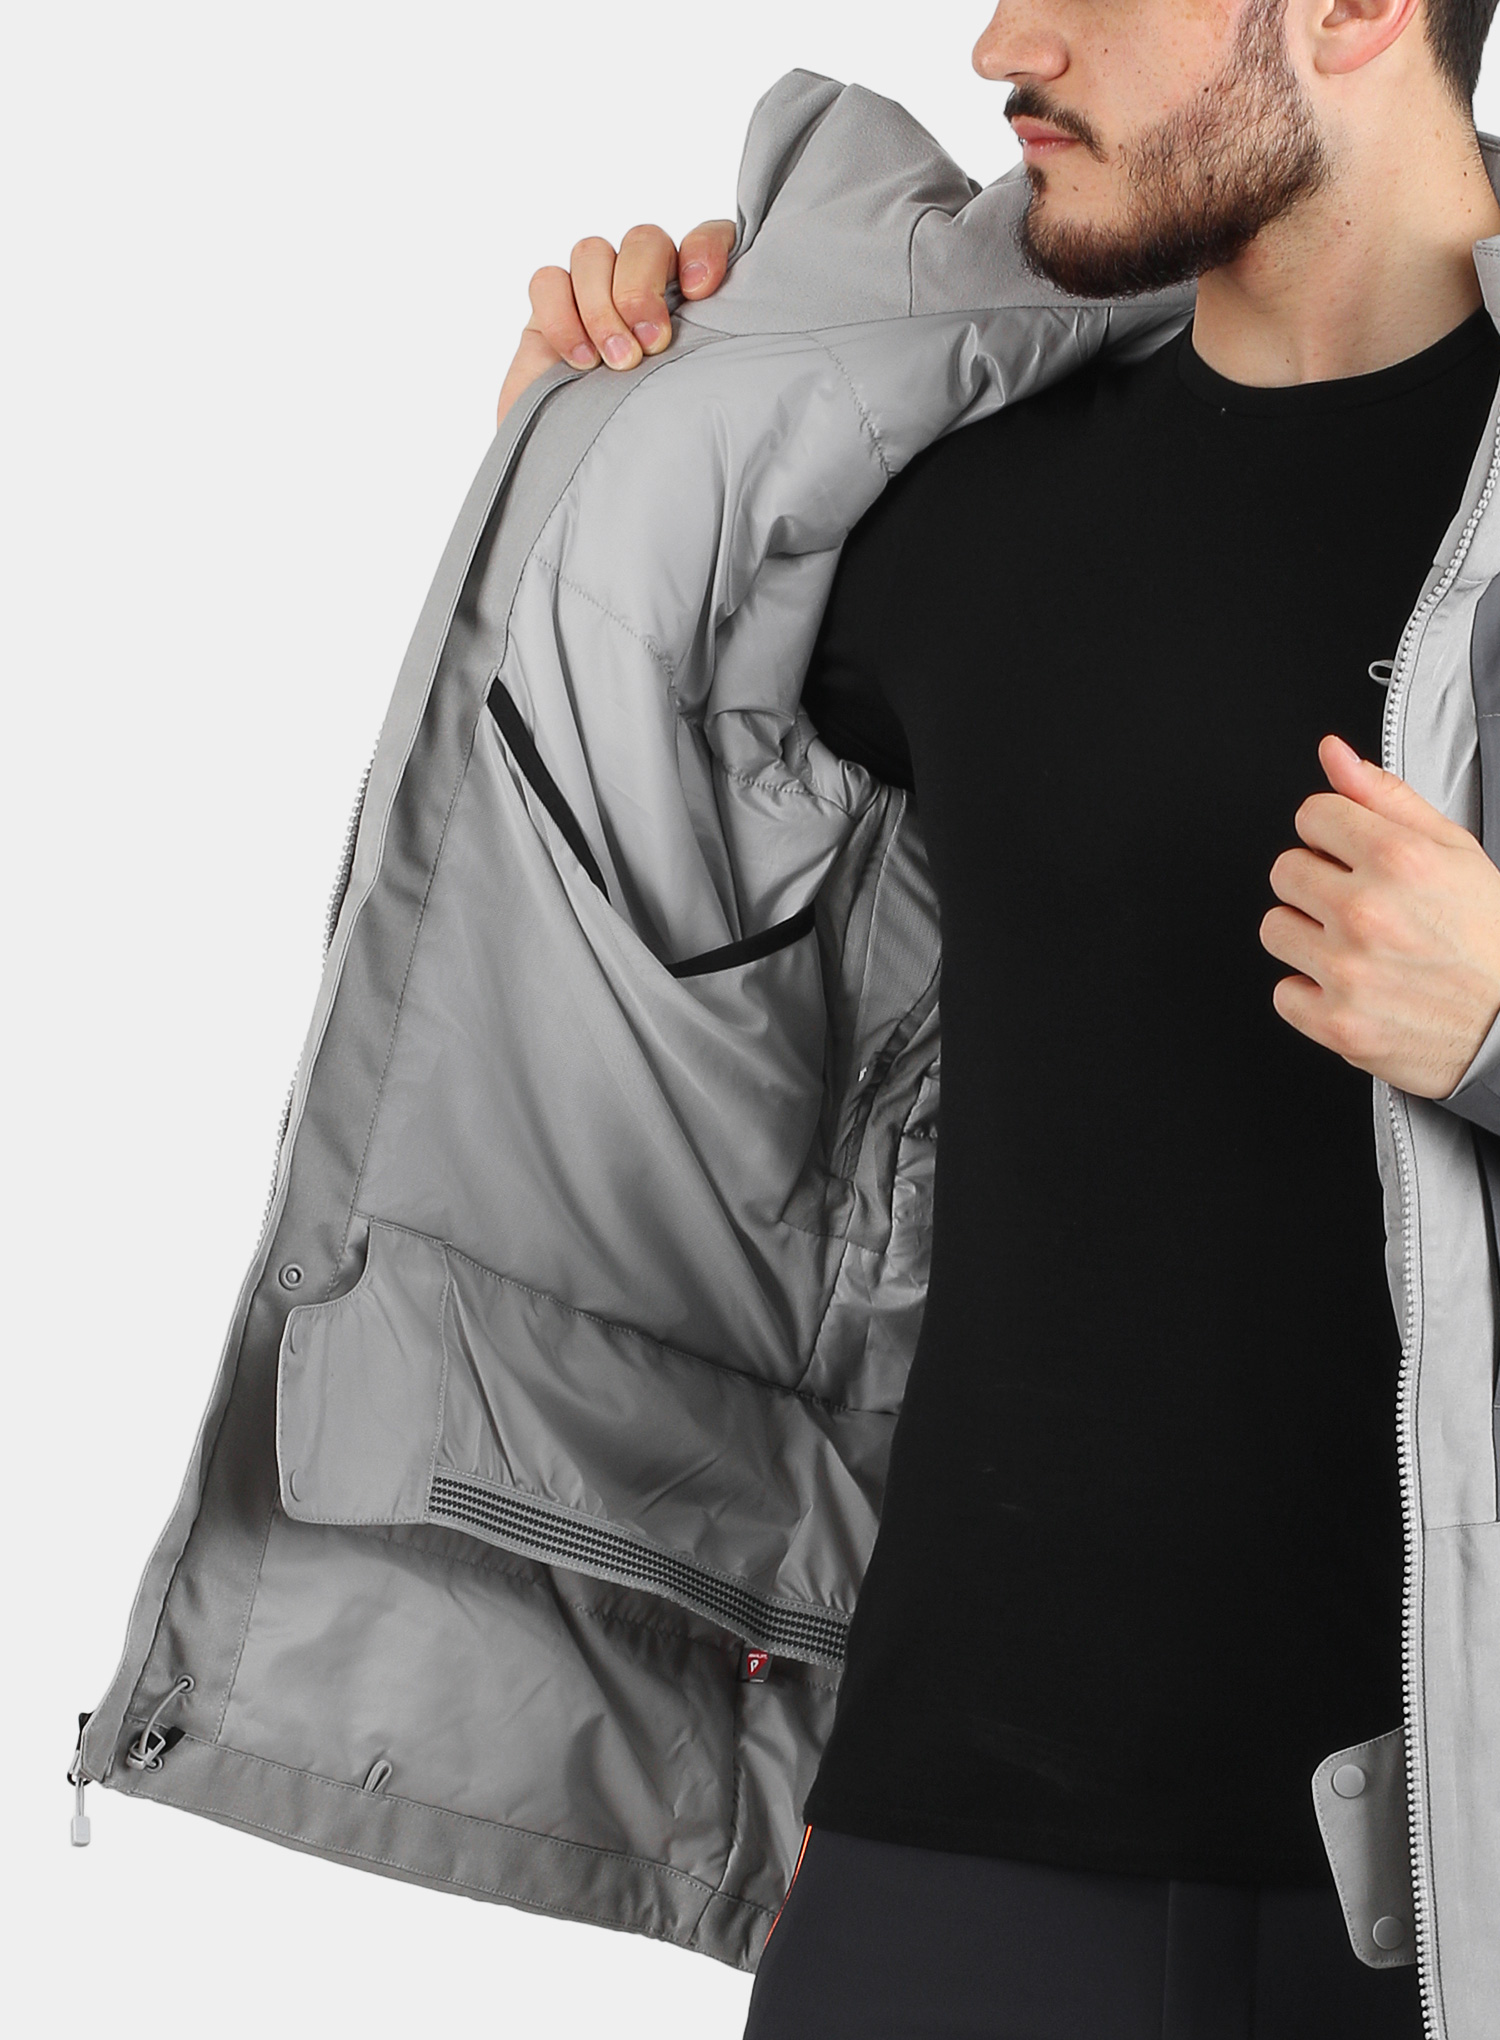 Kurtka The North Face Chakal Jacket - meld grey/vanadis grey - zdjęcie nr. 8